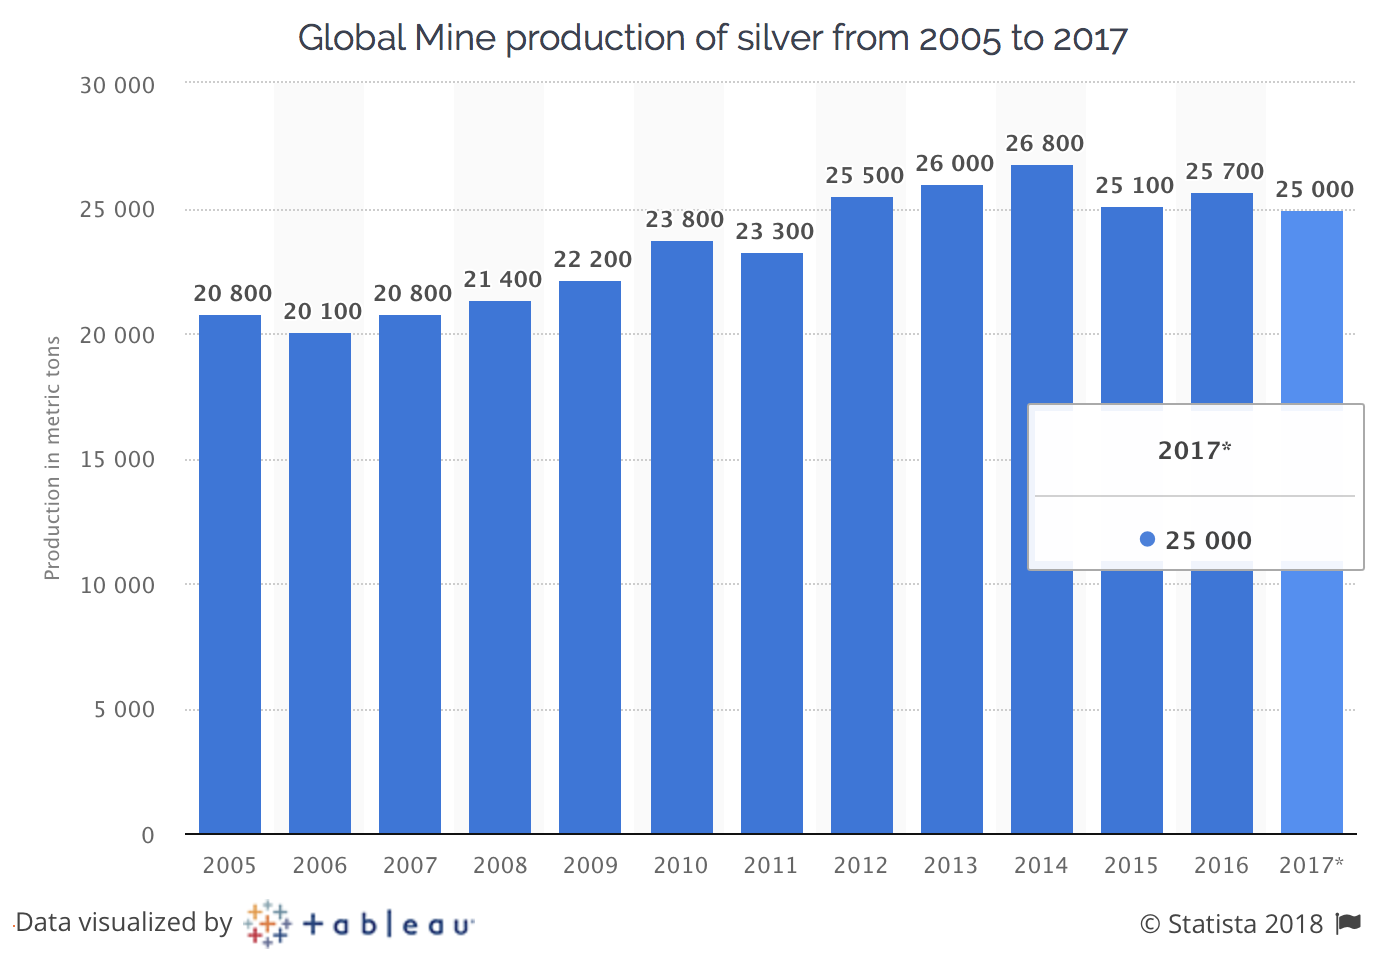 Global mine production of silver from 2005 to 2017